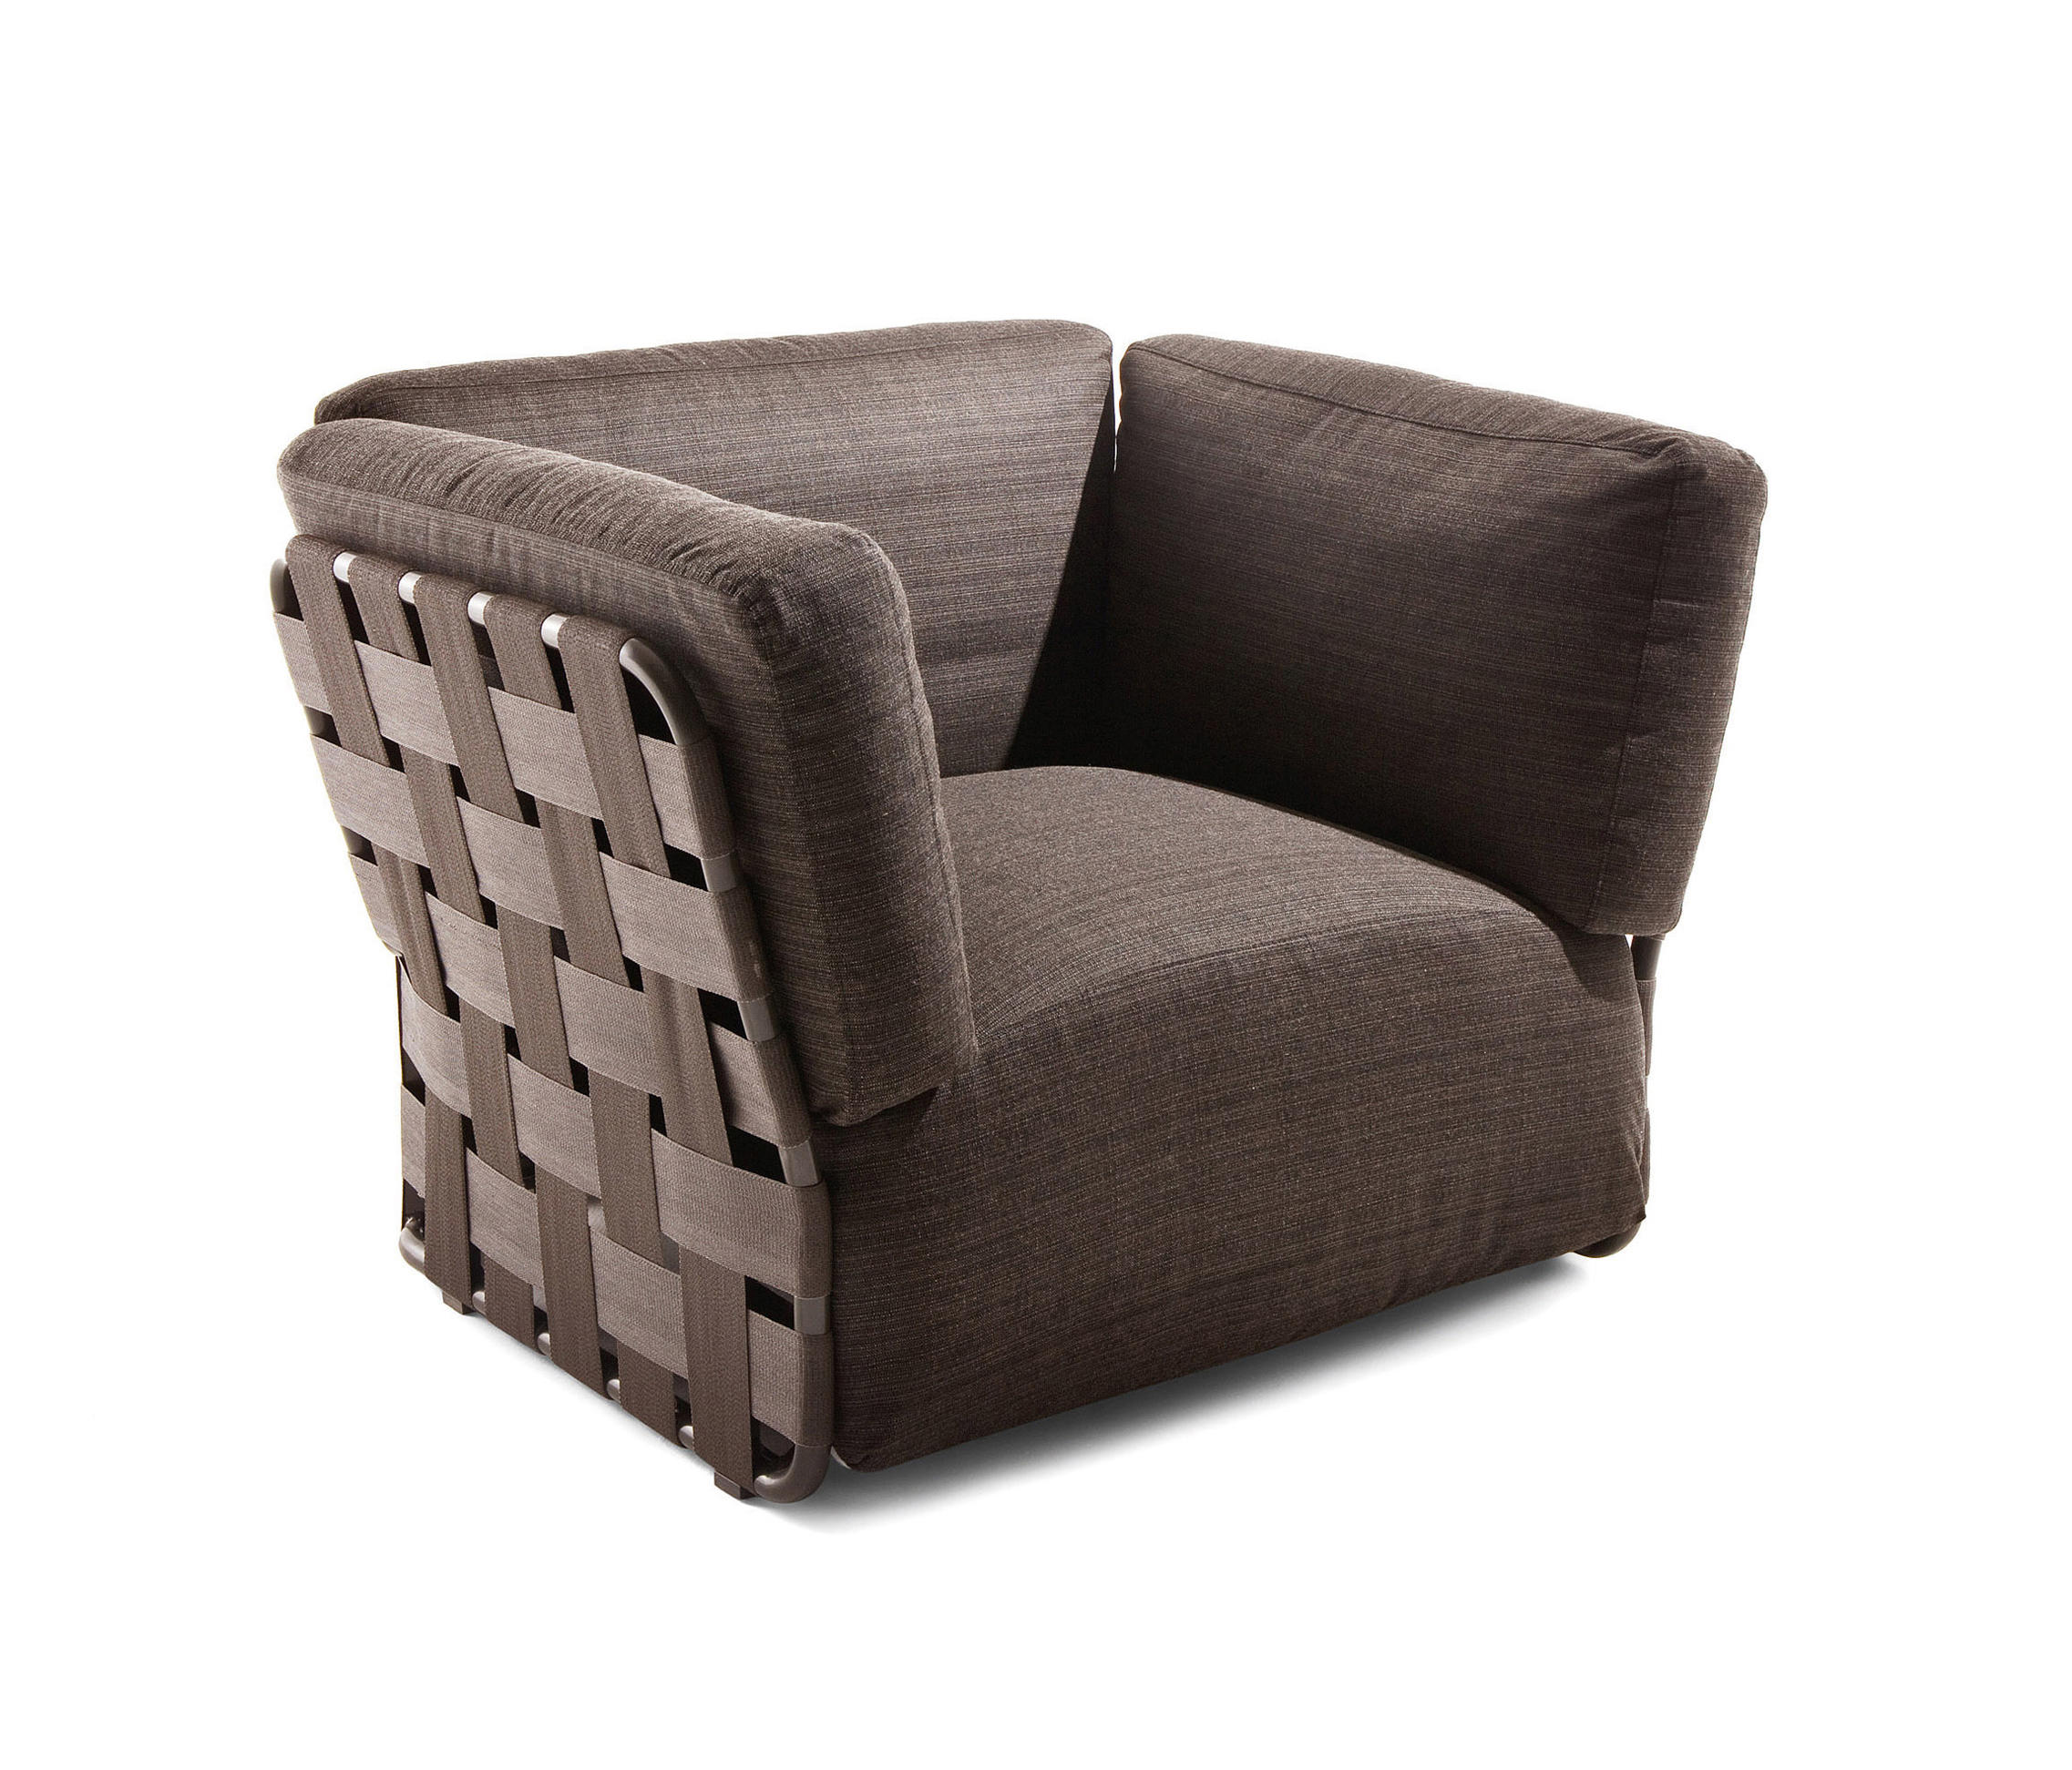 obi lounge chair garden armchairs from varaschin architonic. Black Bedroom Furniture Sets. Home Design Ideas